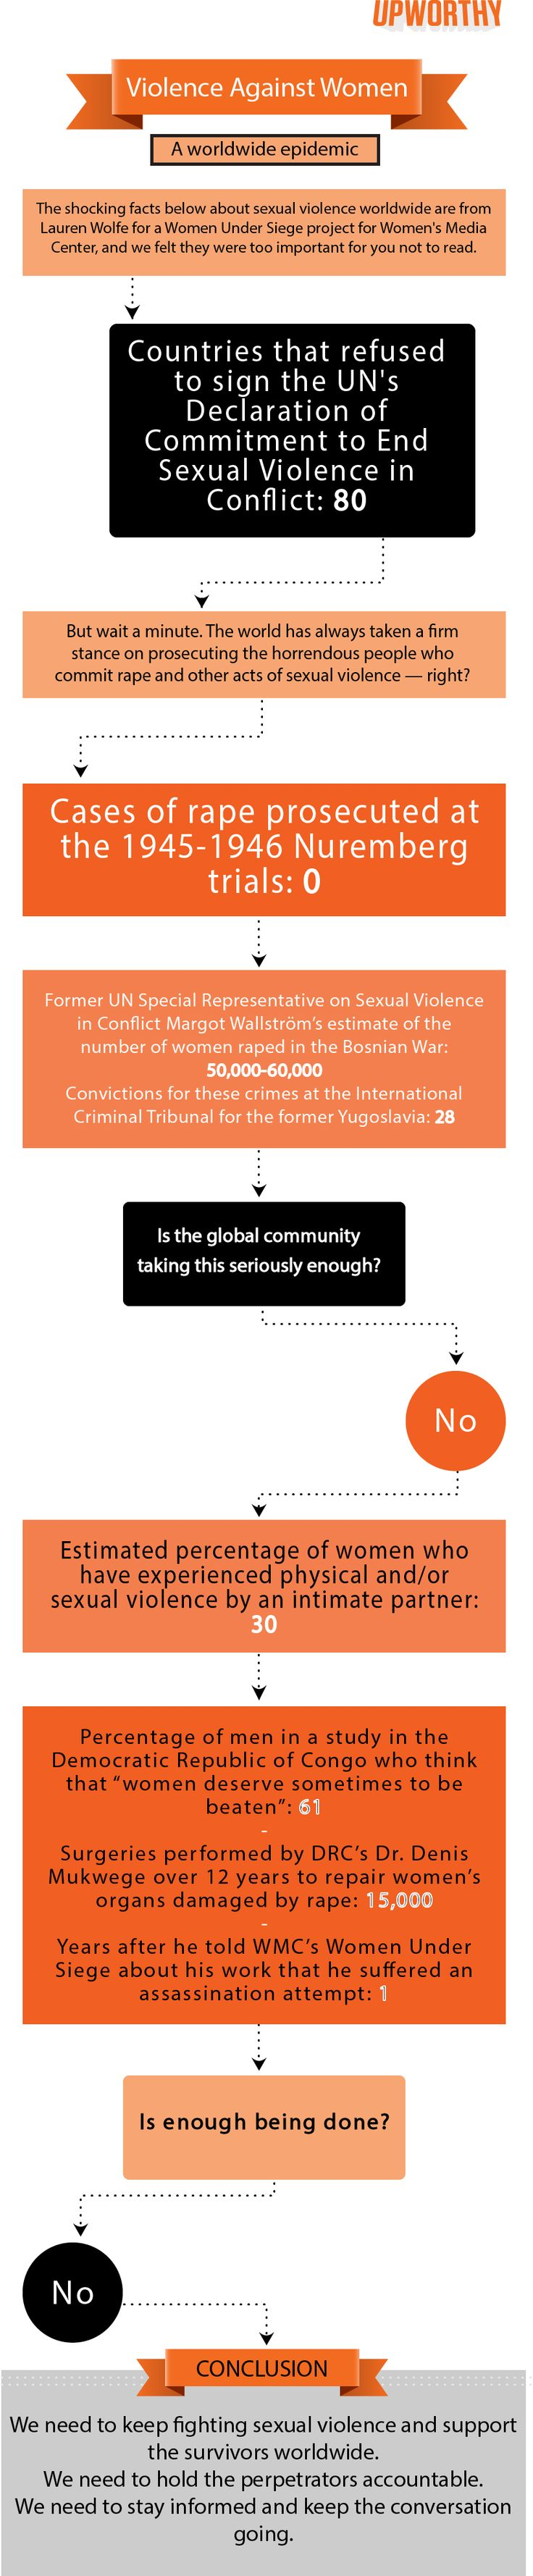 These Alarming Facts Essentially Say: Women, You're Collateral Damage. More HAS to be done to keep women safe